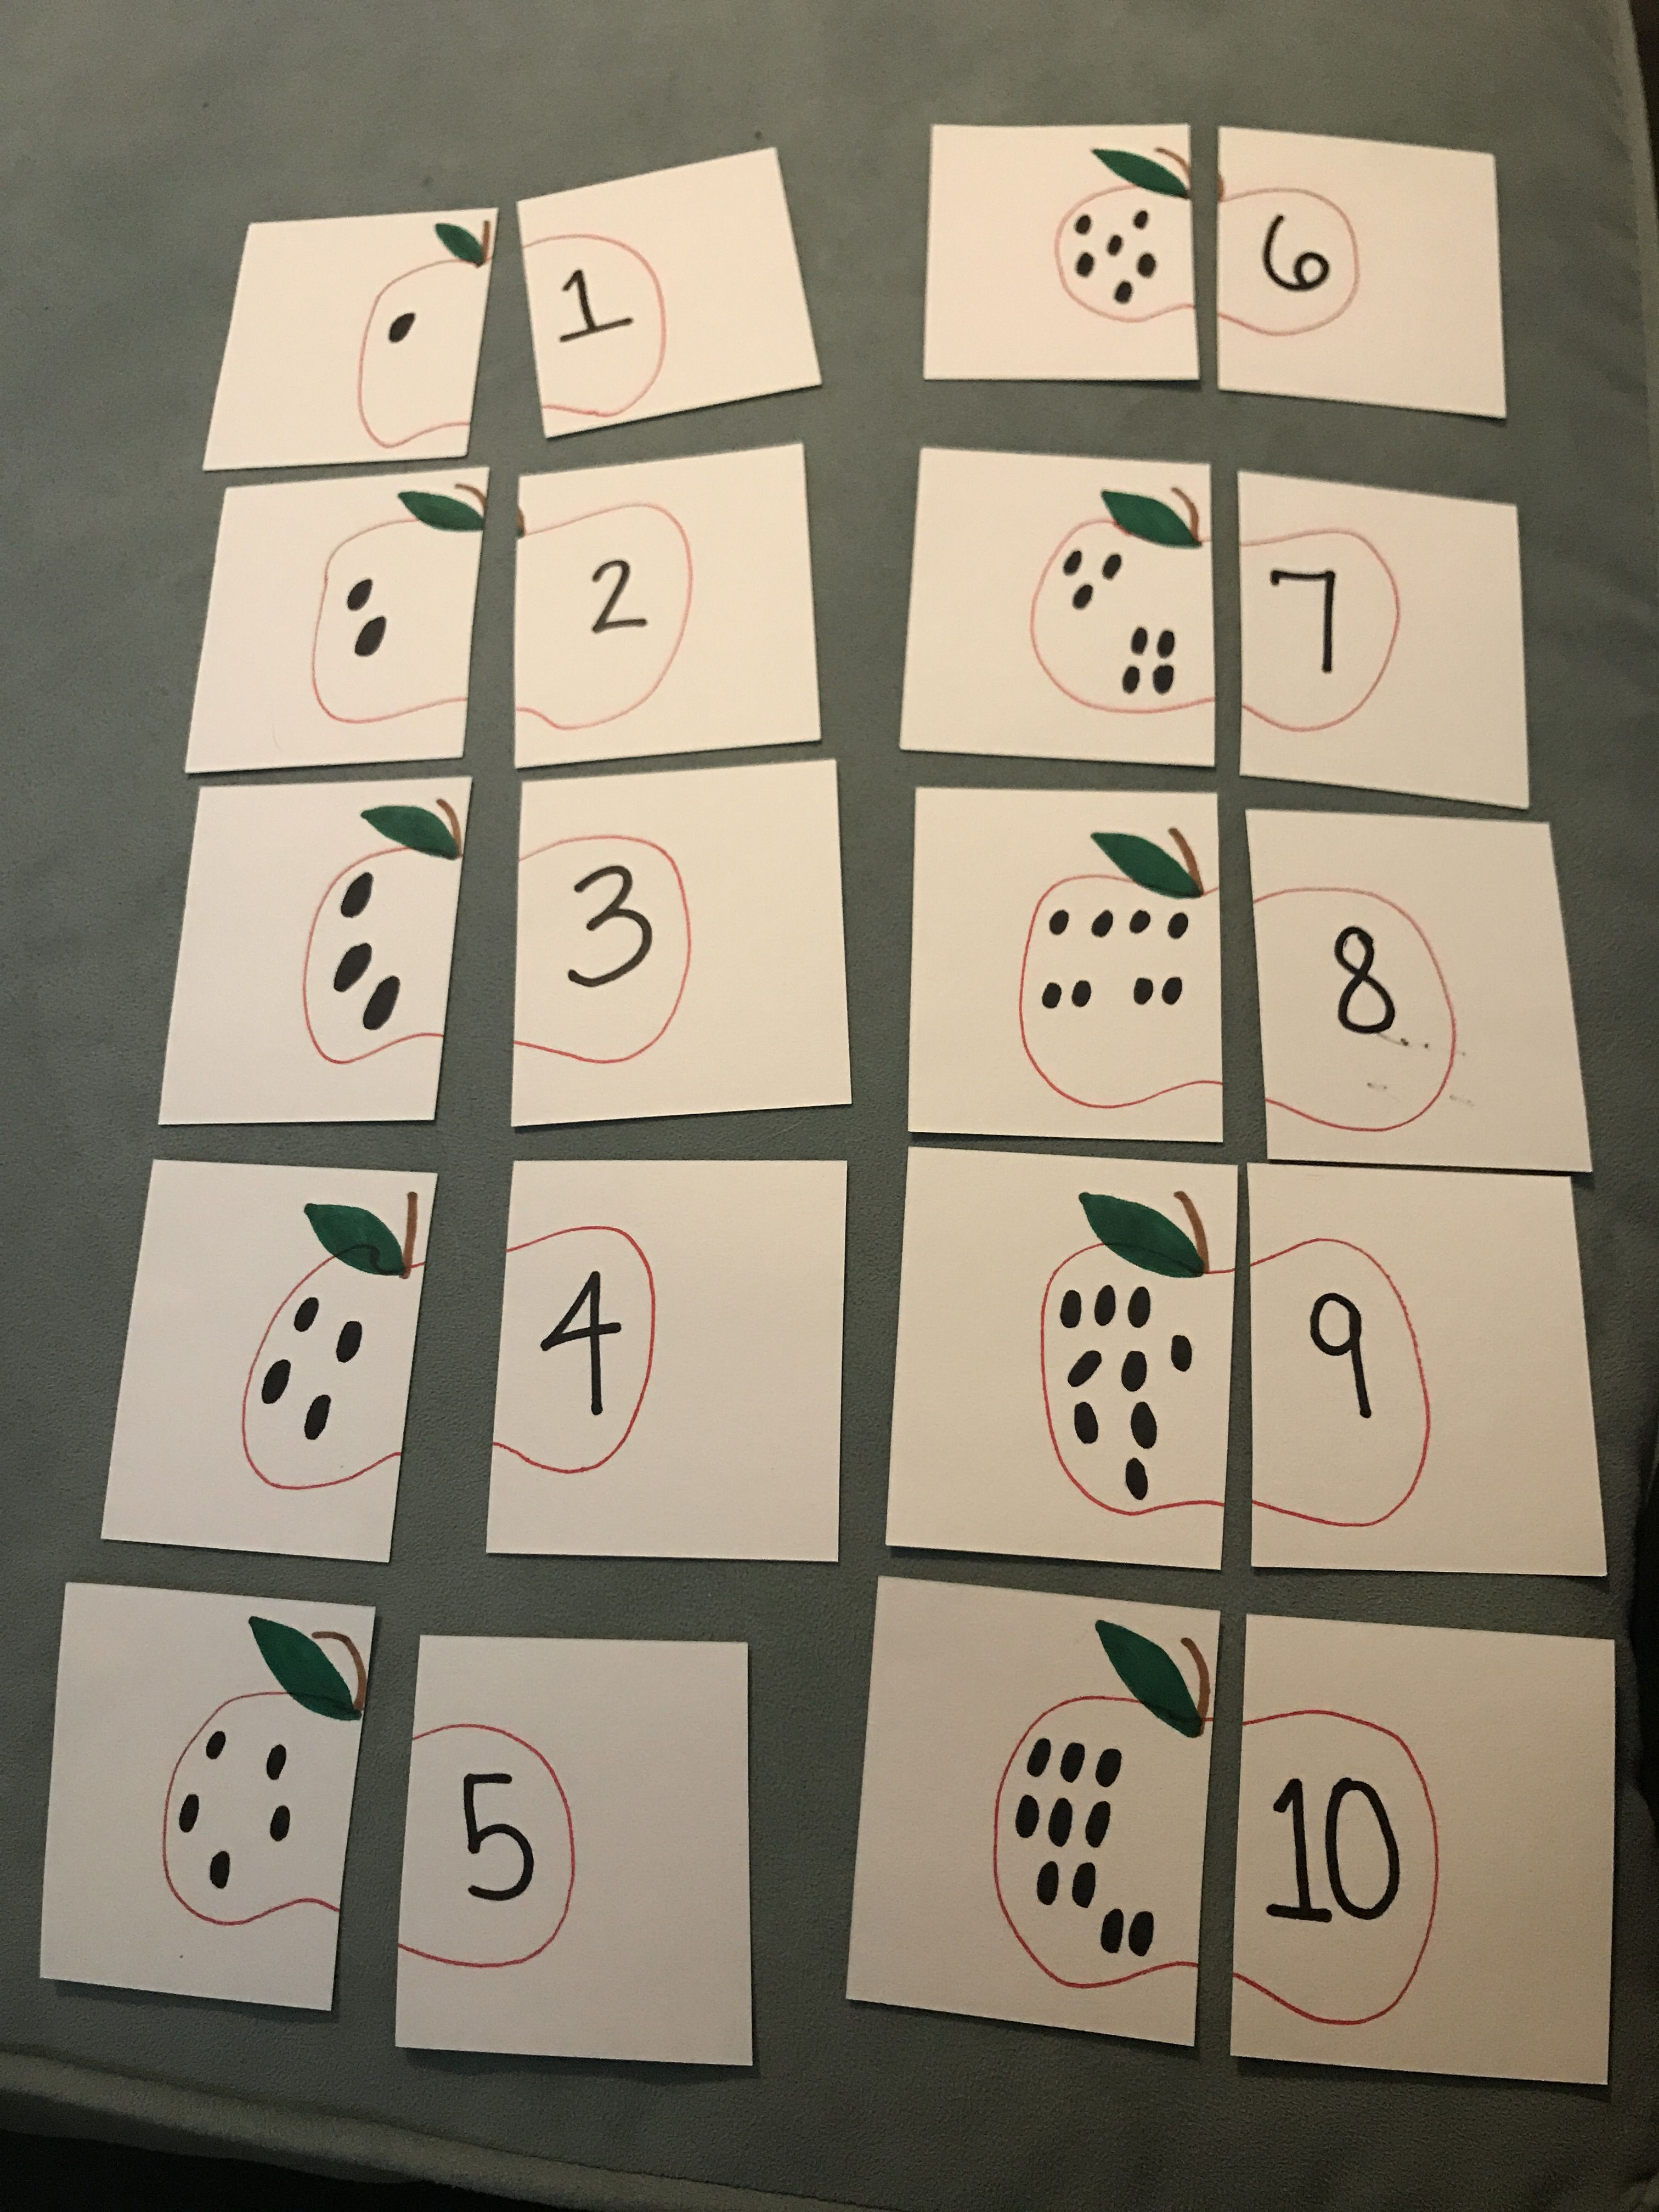 10 Apples Up On Top Matching Game Children Match The